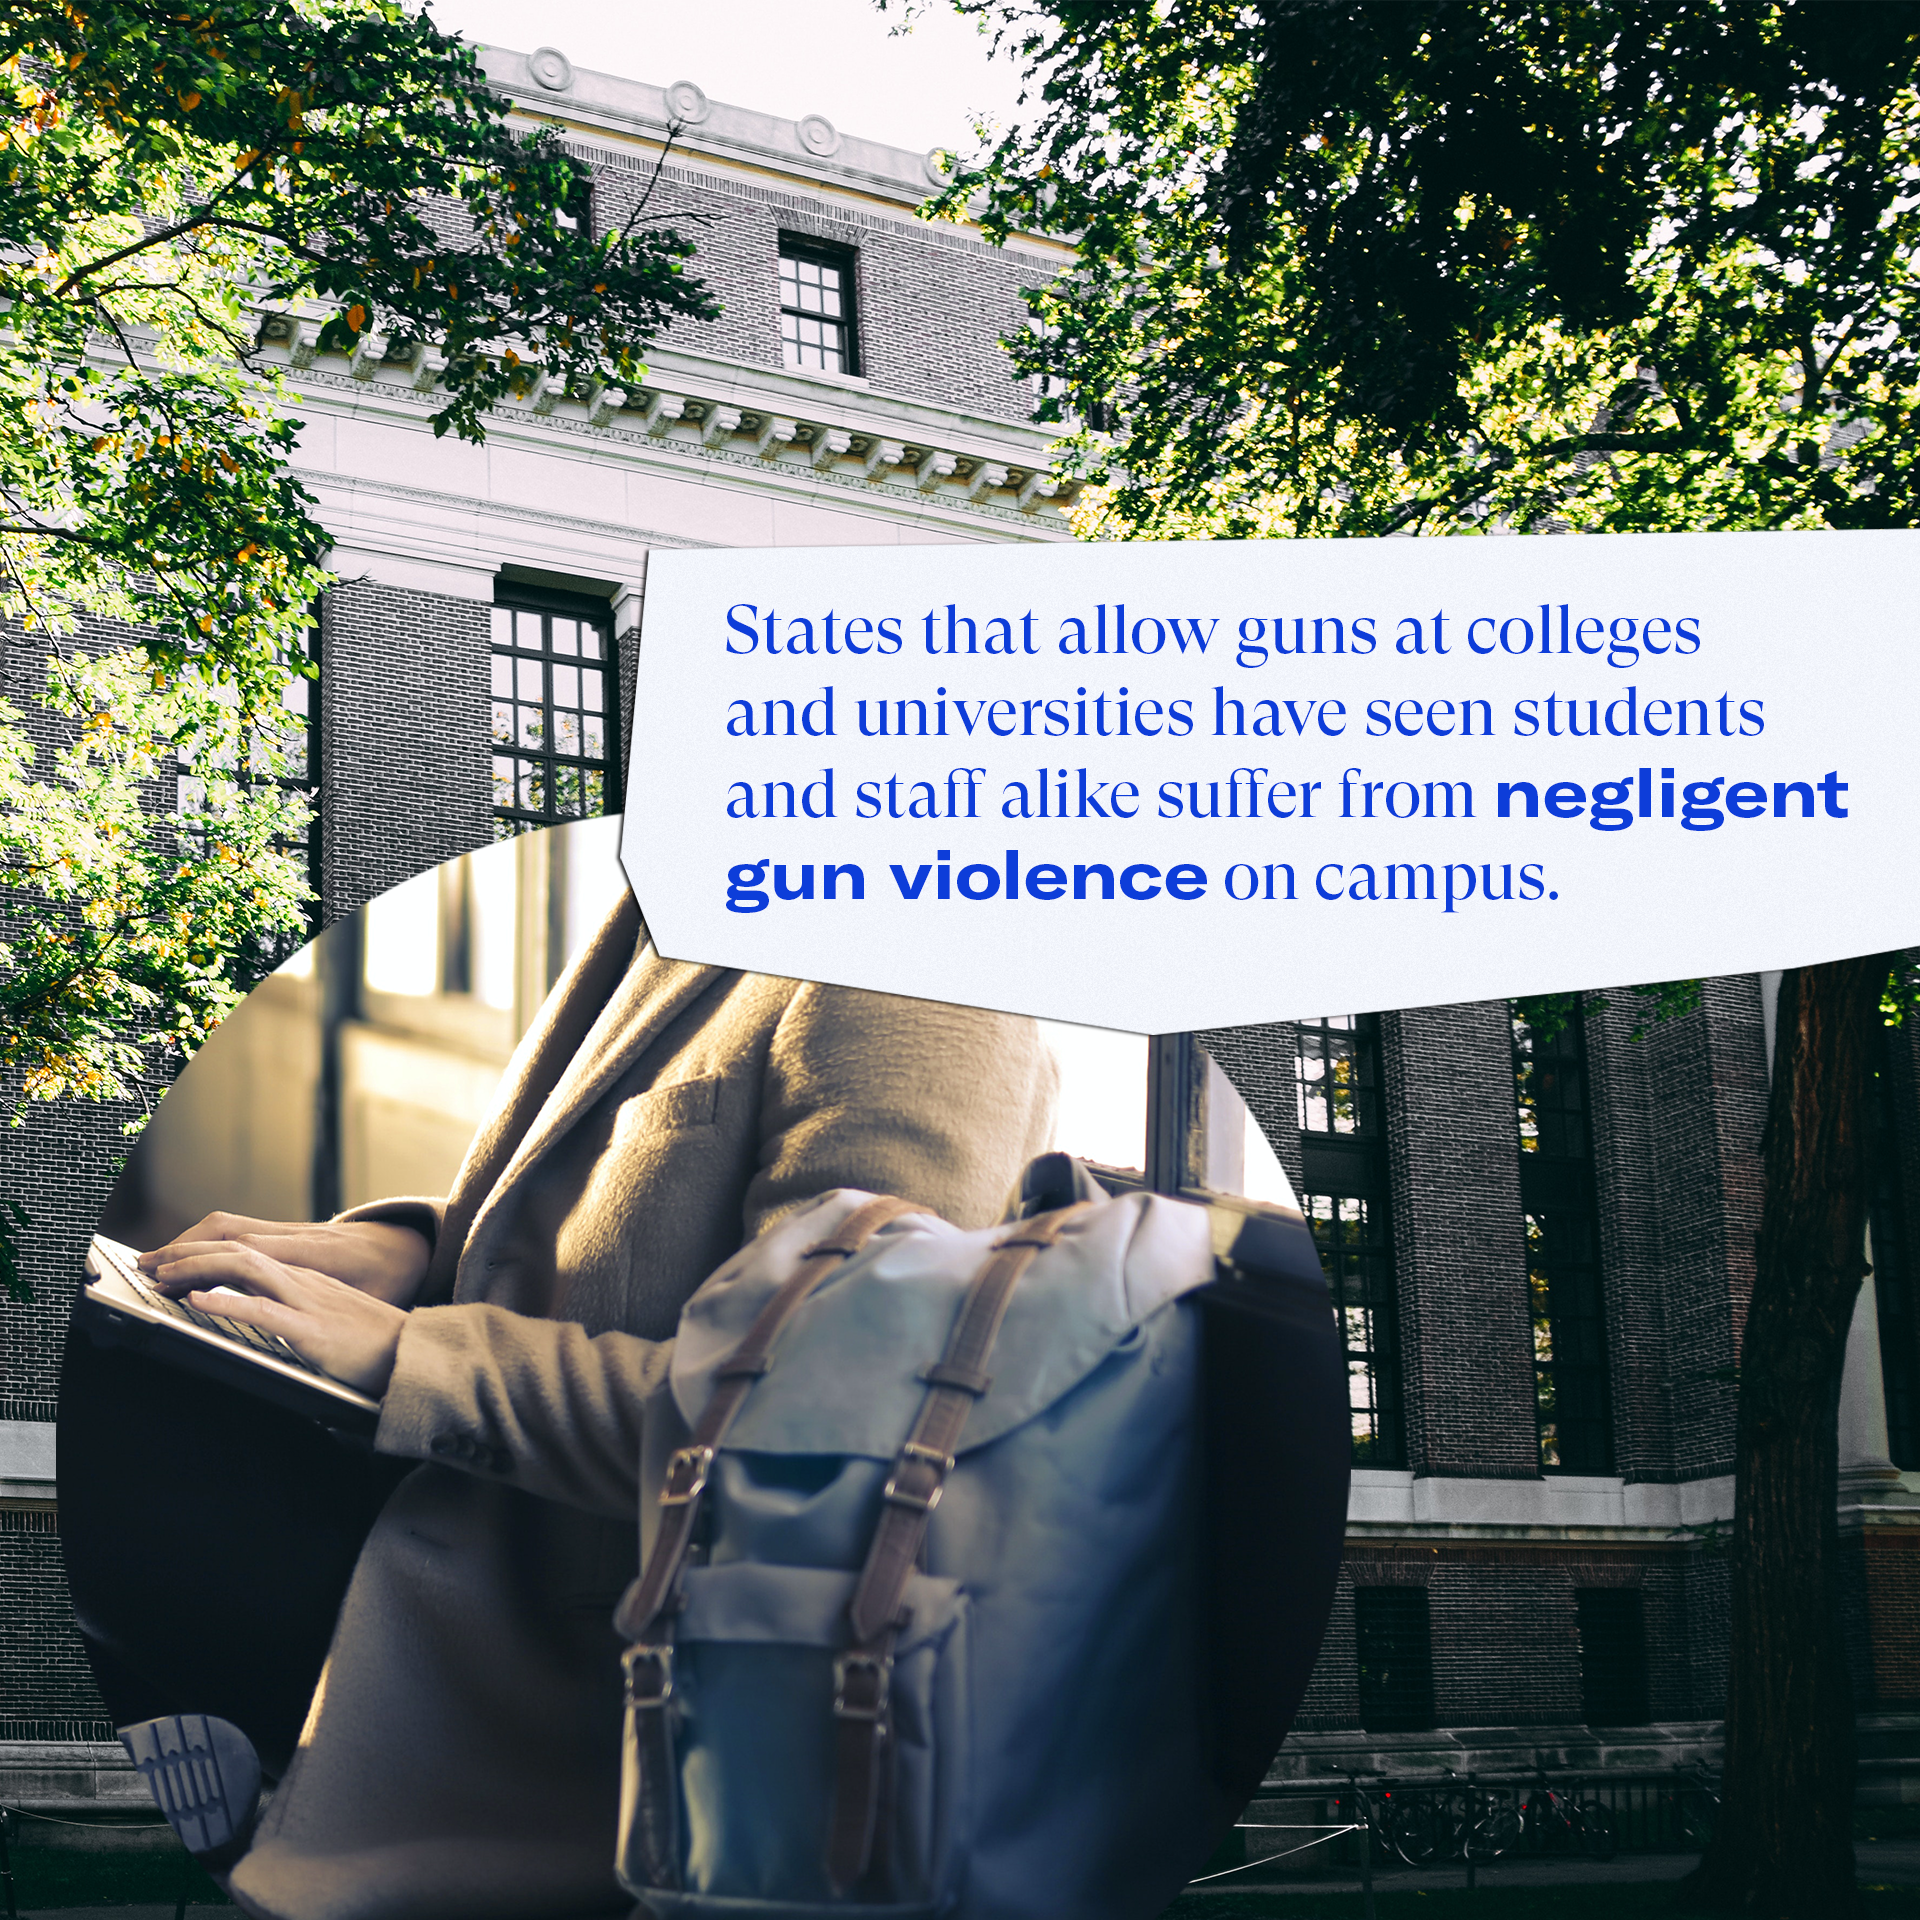 Violence on college campuses